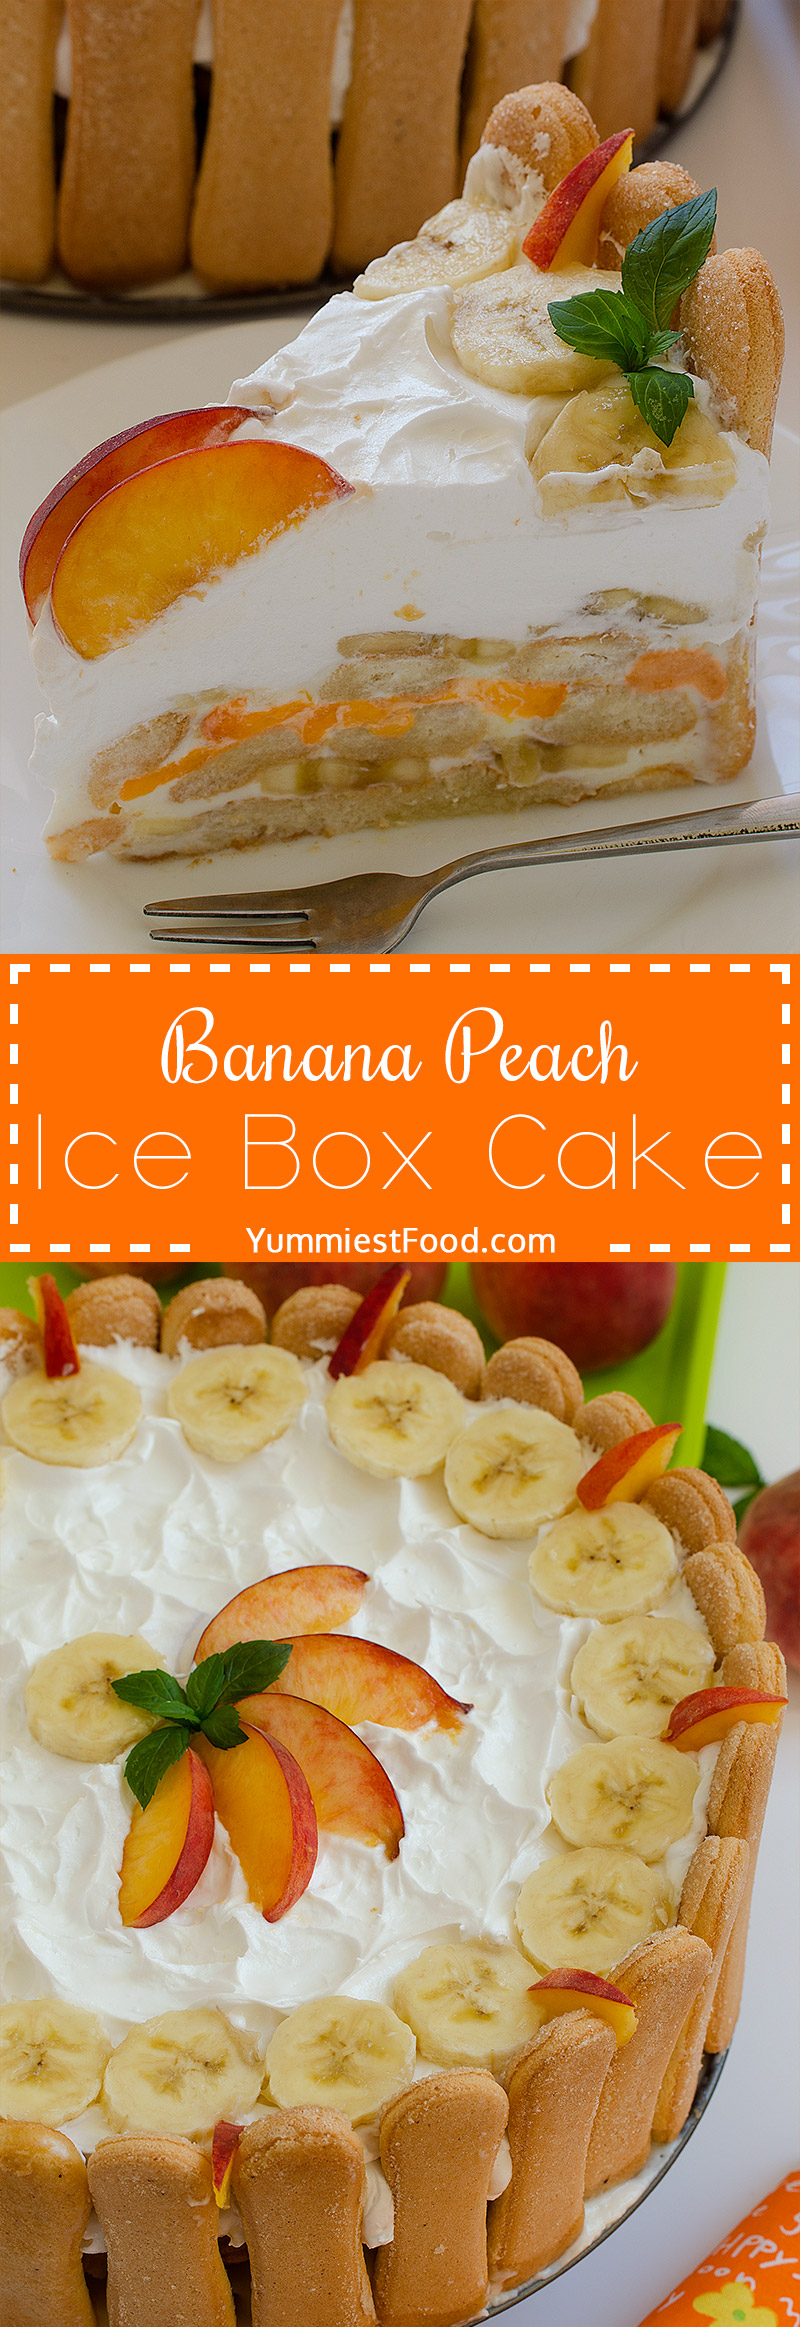 Banana Peach Ice Box Cake - no bake, delicious, refreshing and perfect for summer days